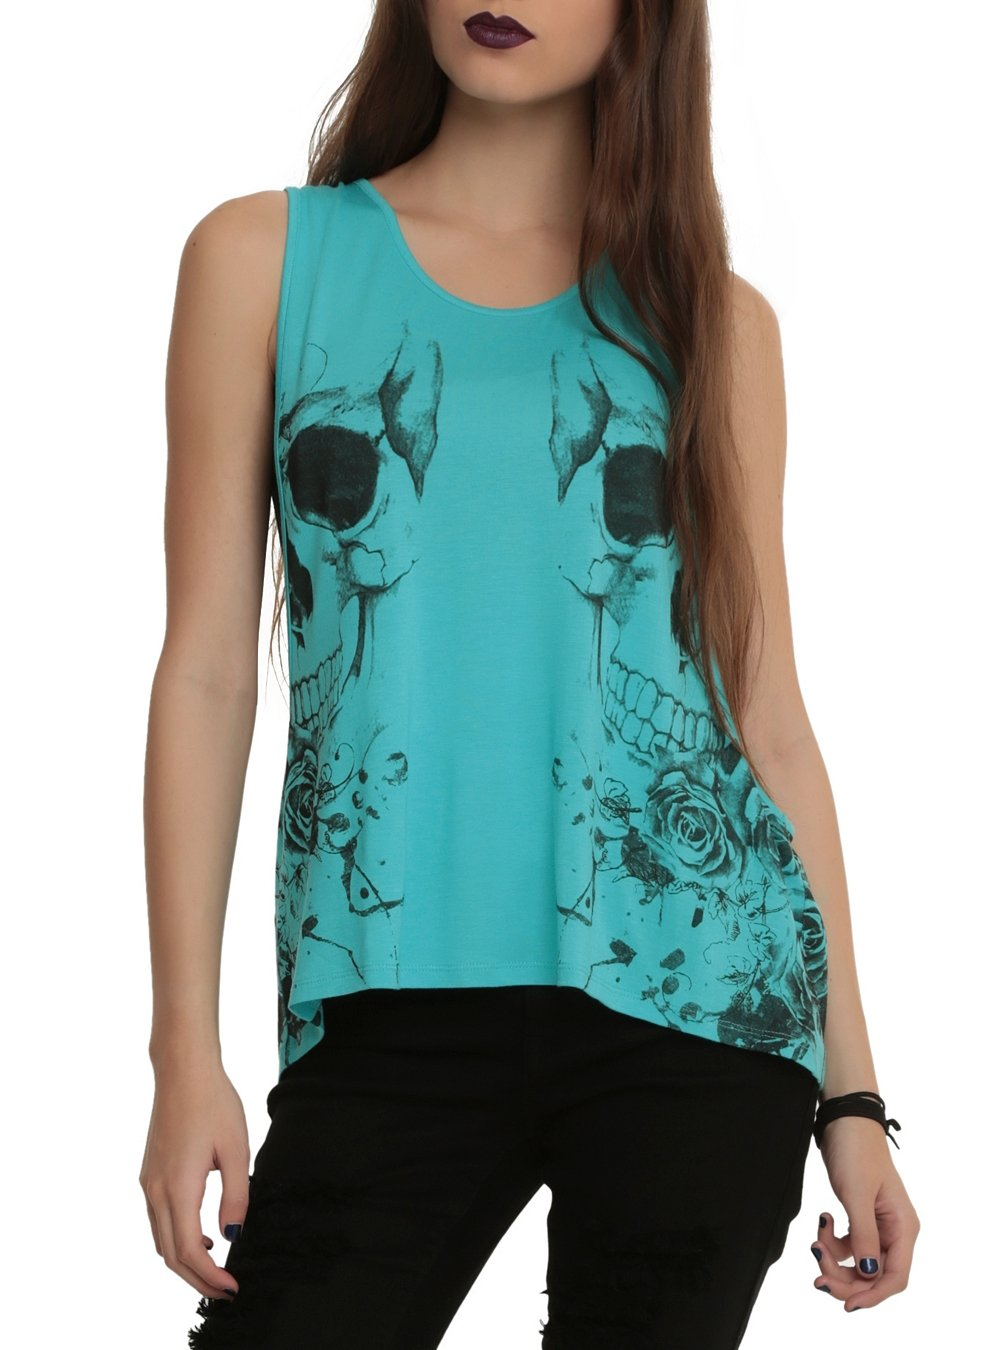 Turquoise Mirror Skull Girls Tank Top